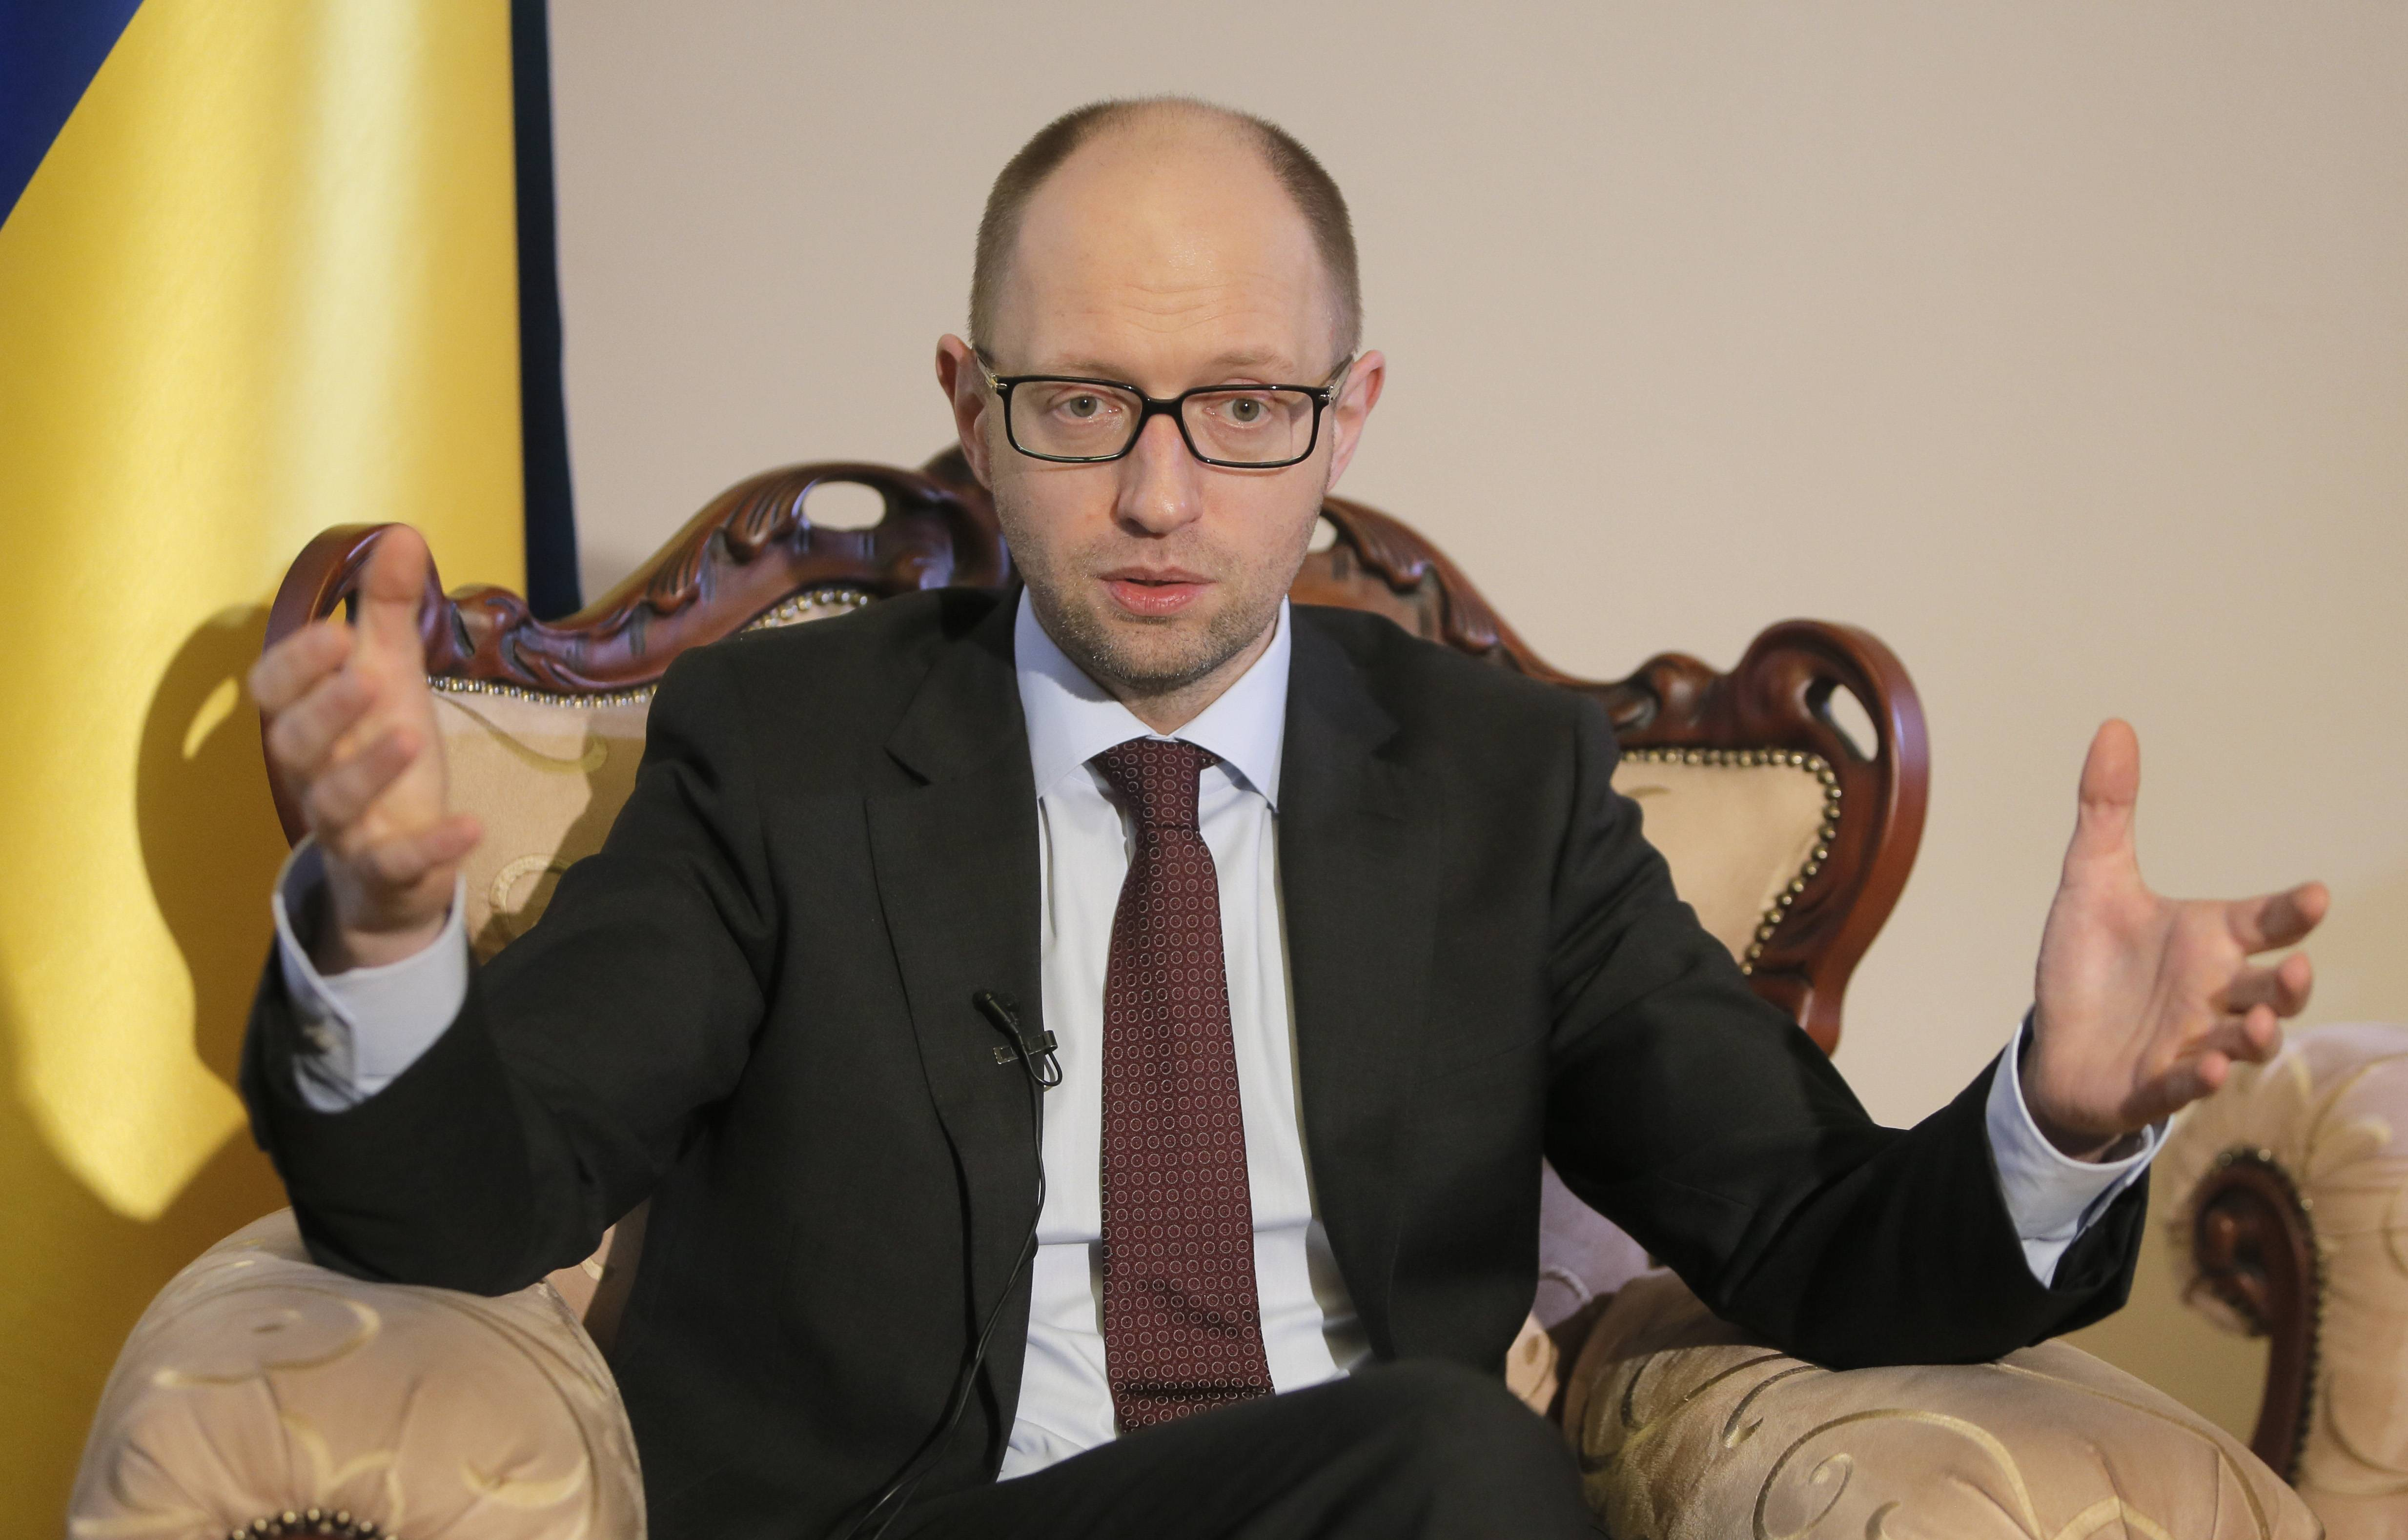 Ukrainian Prime Minister Arseniy Yatsenyuk talks with reporters during an interview with the Associated Press in Kiev, Ukraine, Wednesday, March 5, 2014. Yatsenyuk said Wednesday that embattled Crimea must remain part of Ukraine, but may be granted more local powers.